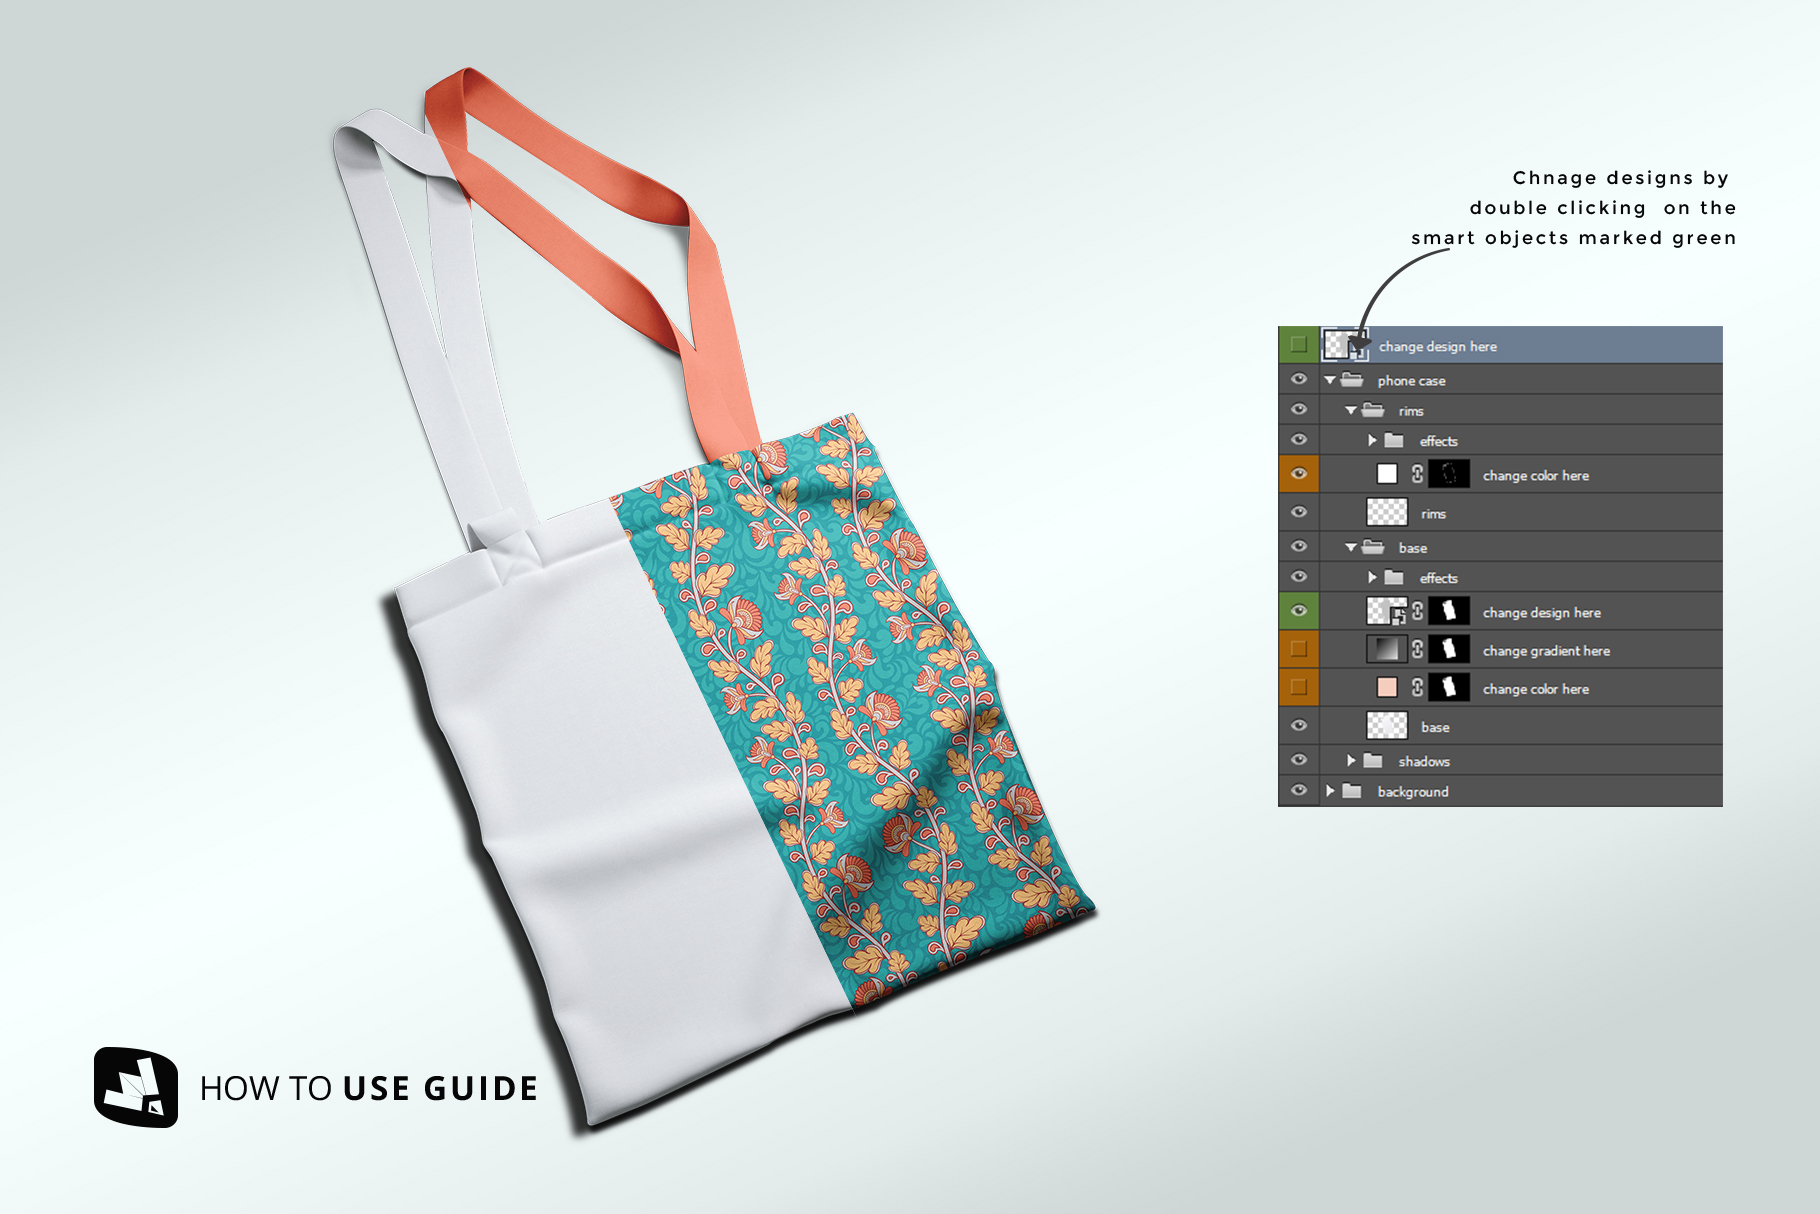 how to change design of the topview reusable cotton bag mockup